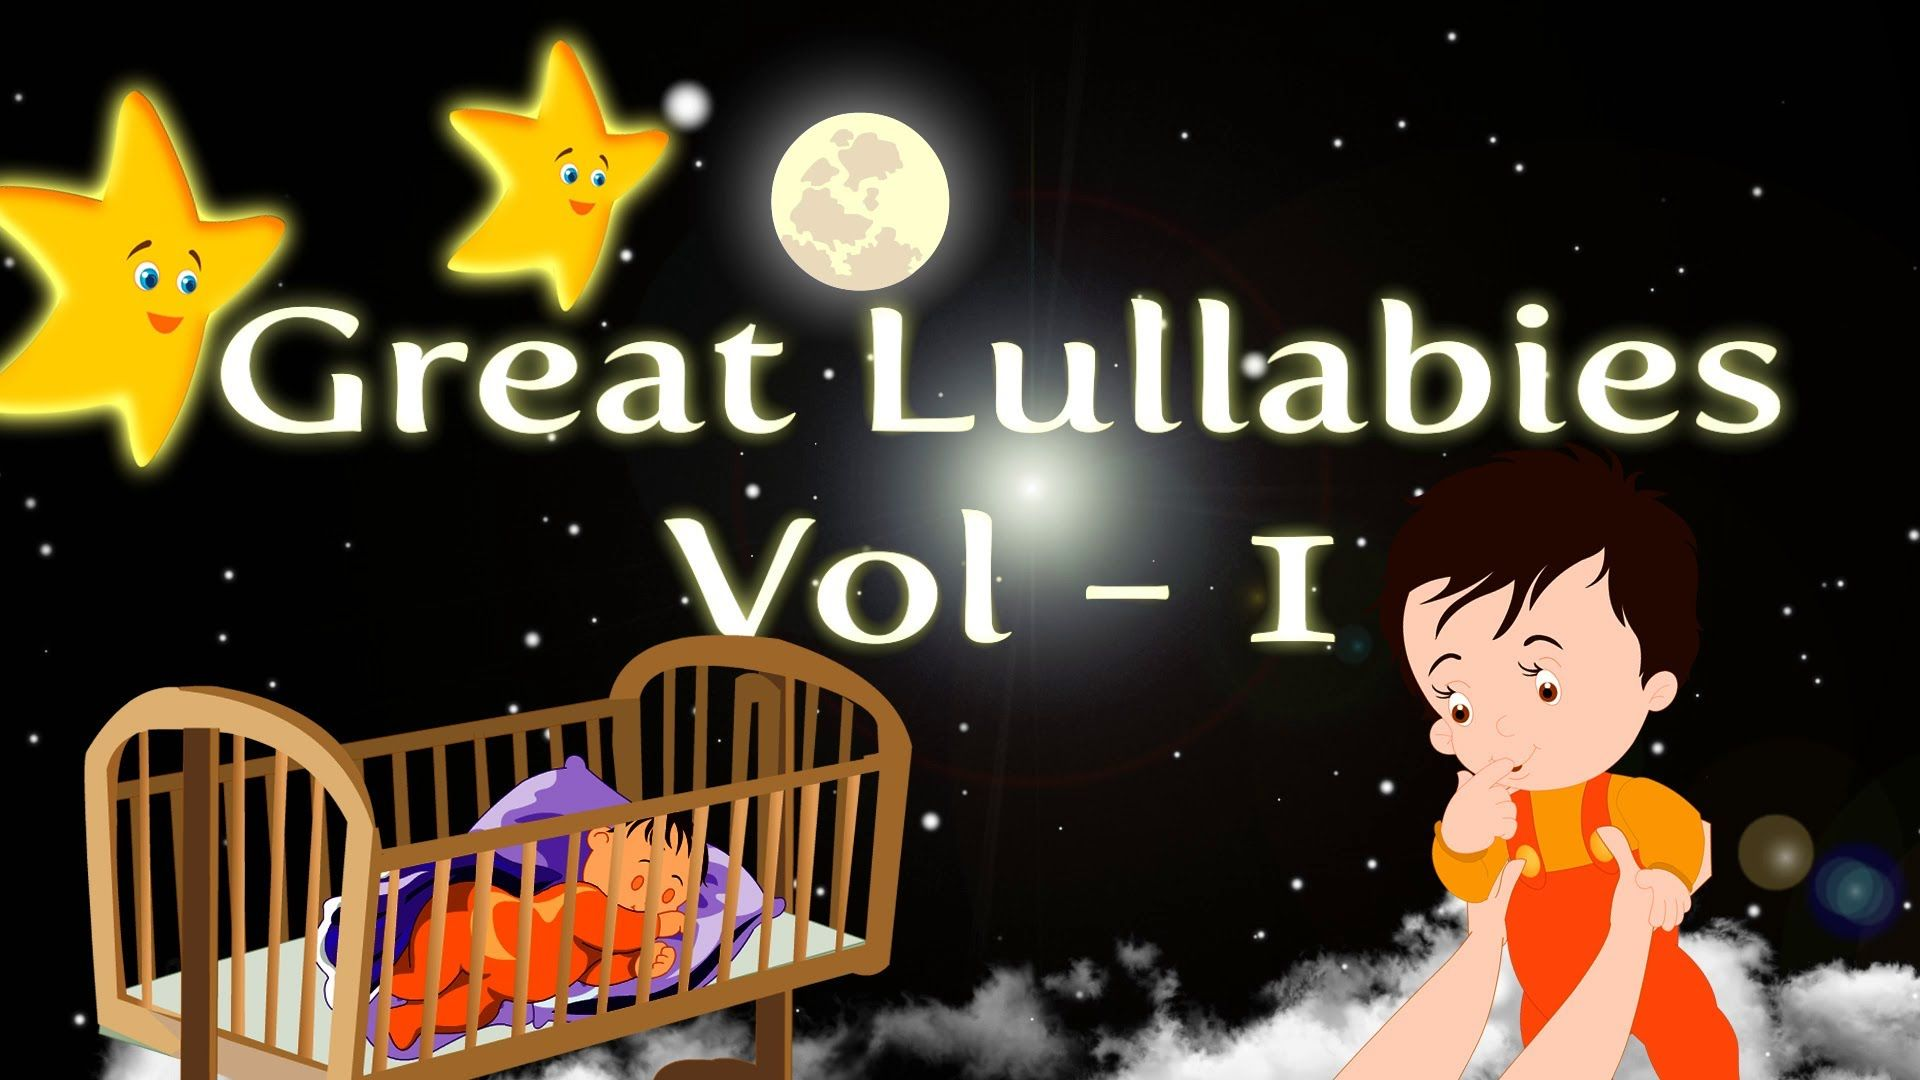 Greatest Lullabies Collection Rock A Bye Baby Hush